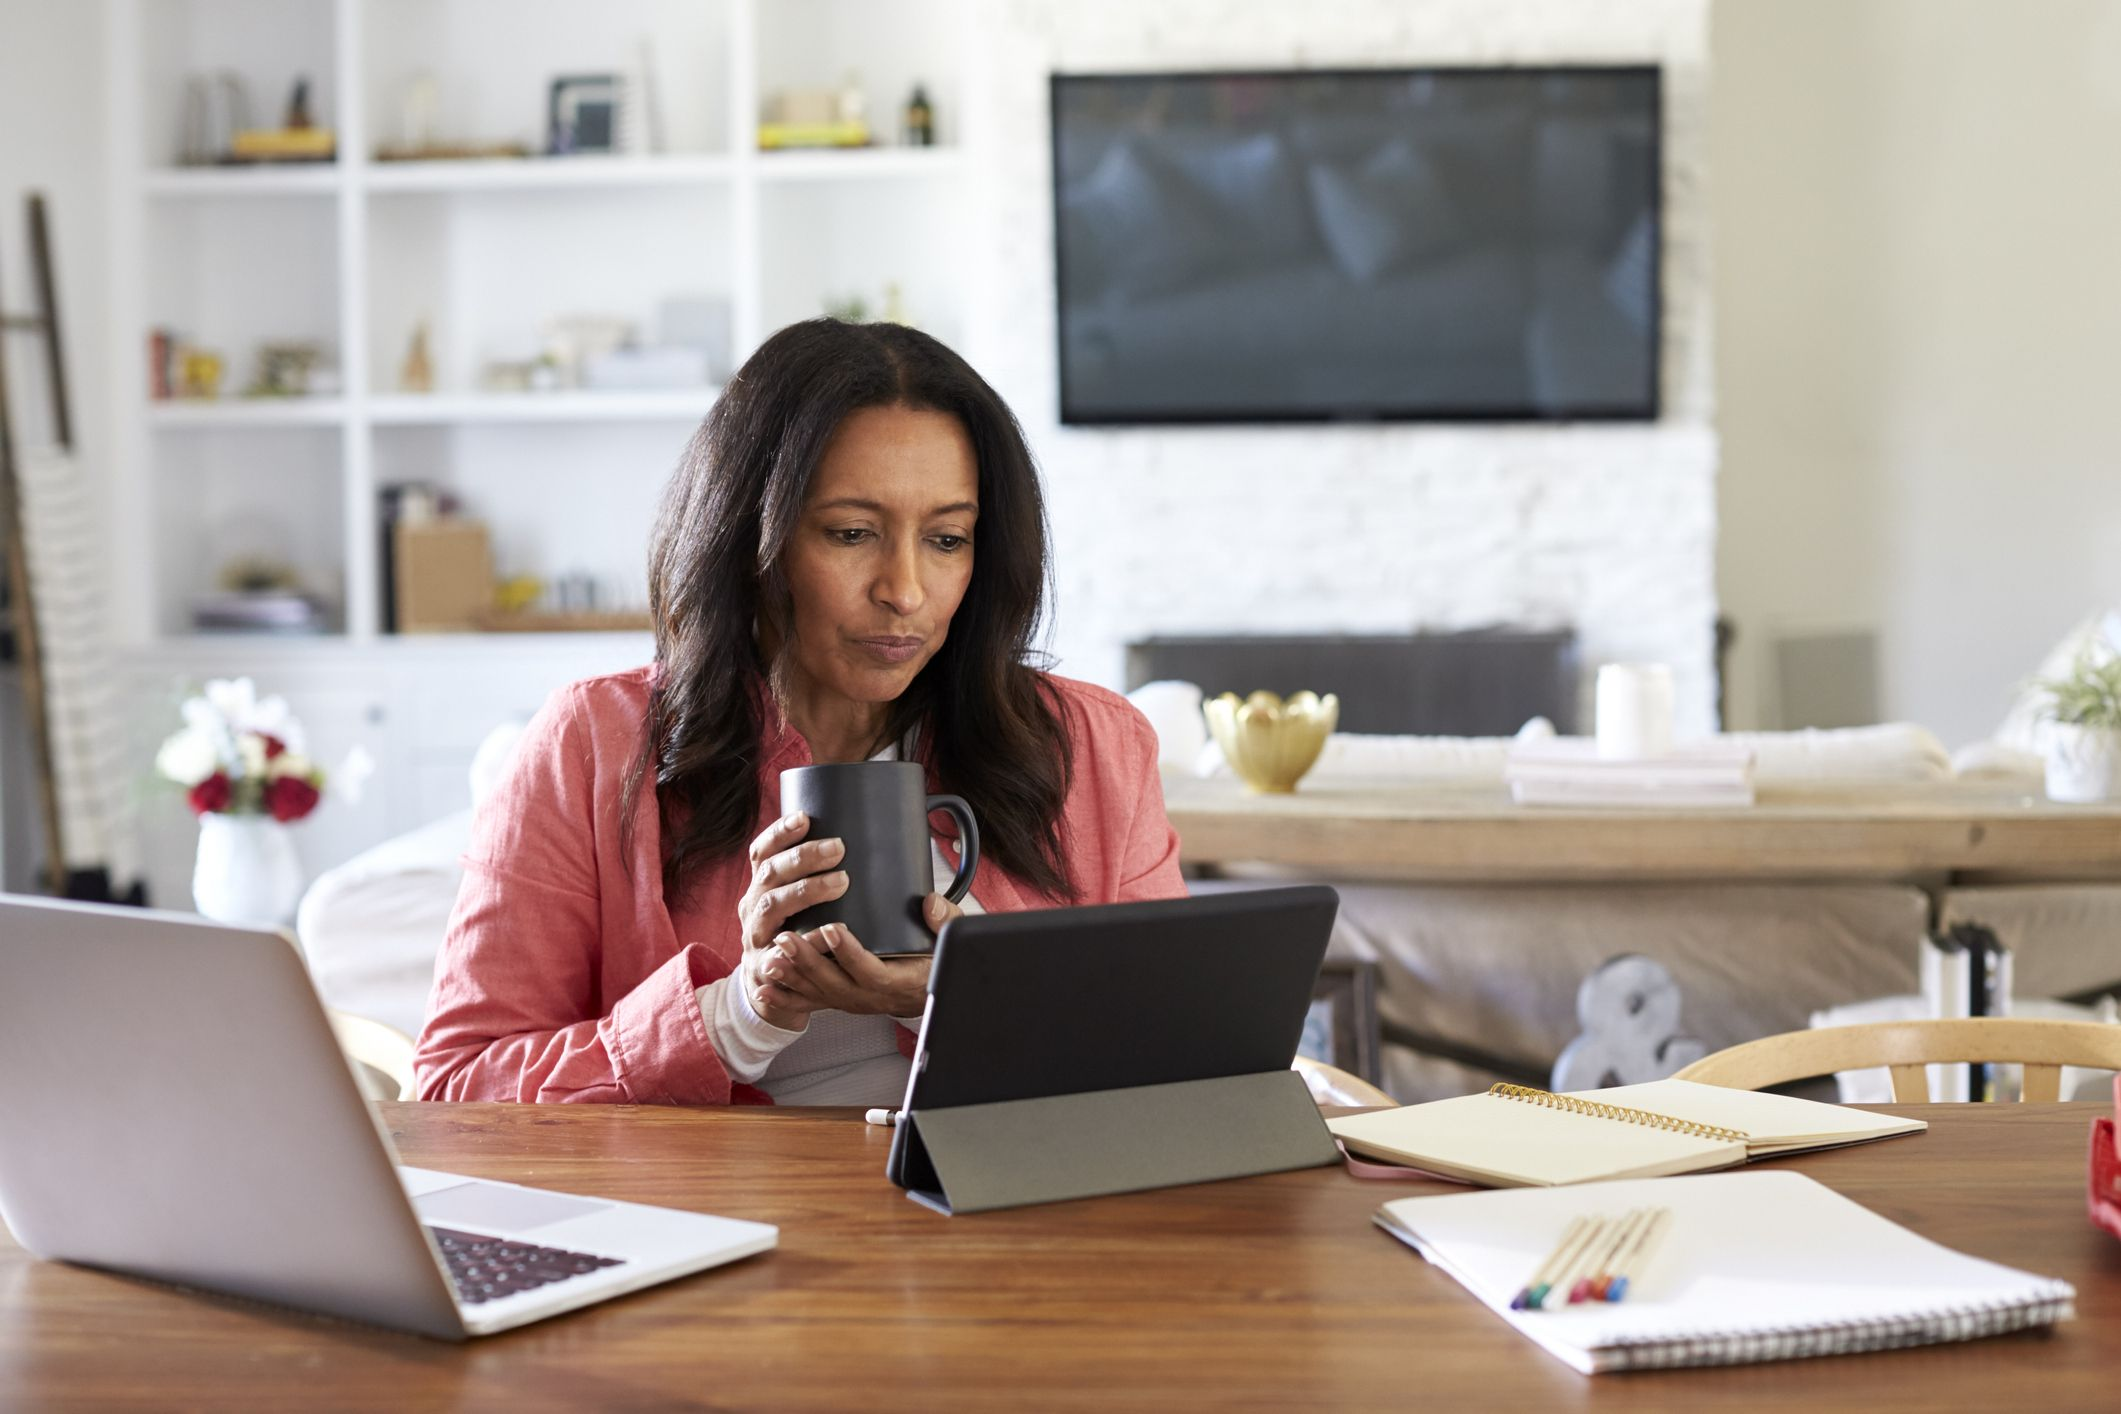 11 Work From Home Business Ideas — Business to Start From Home